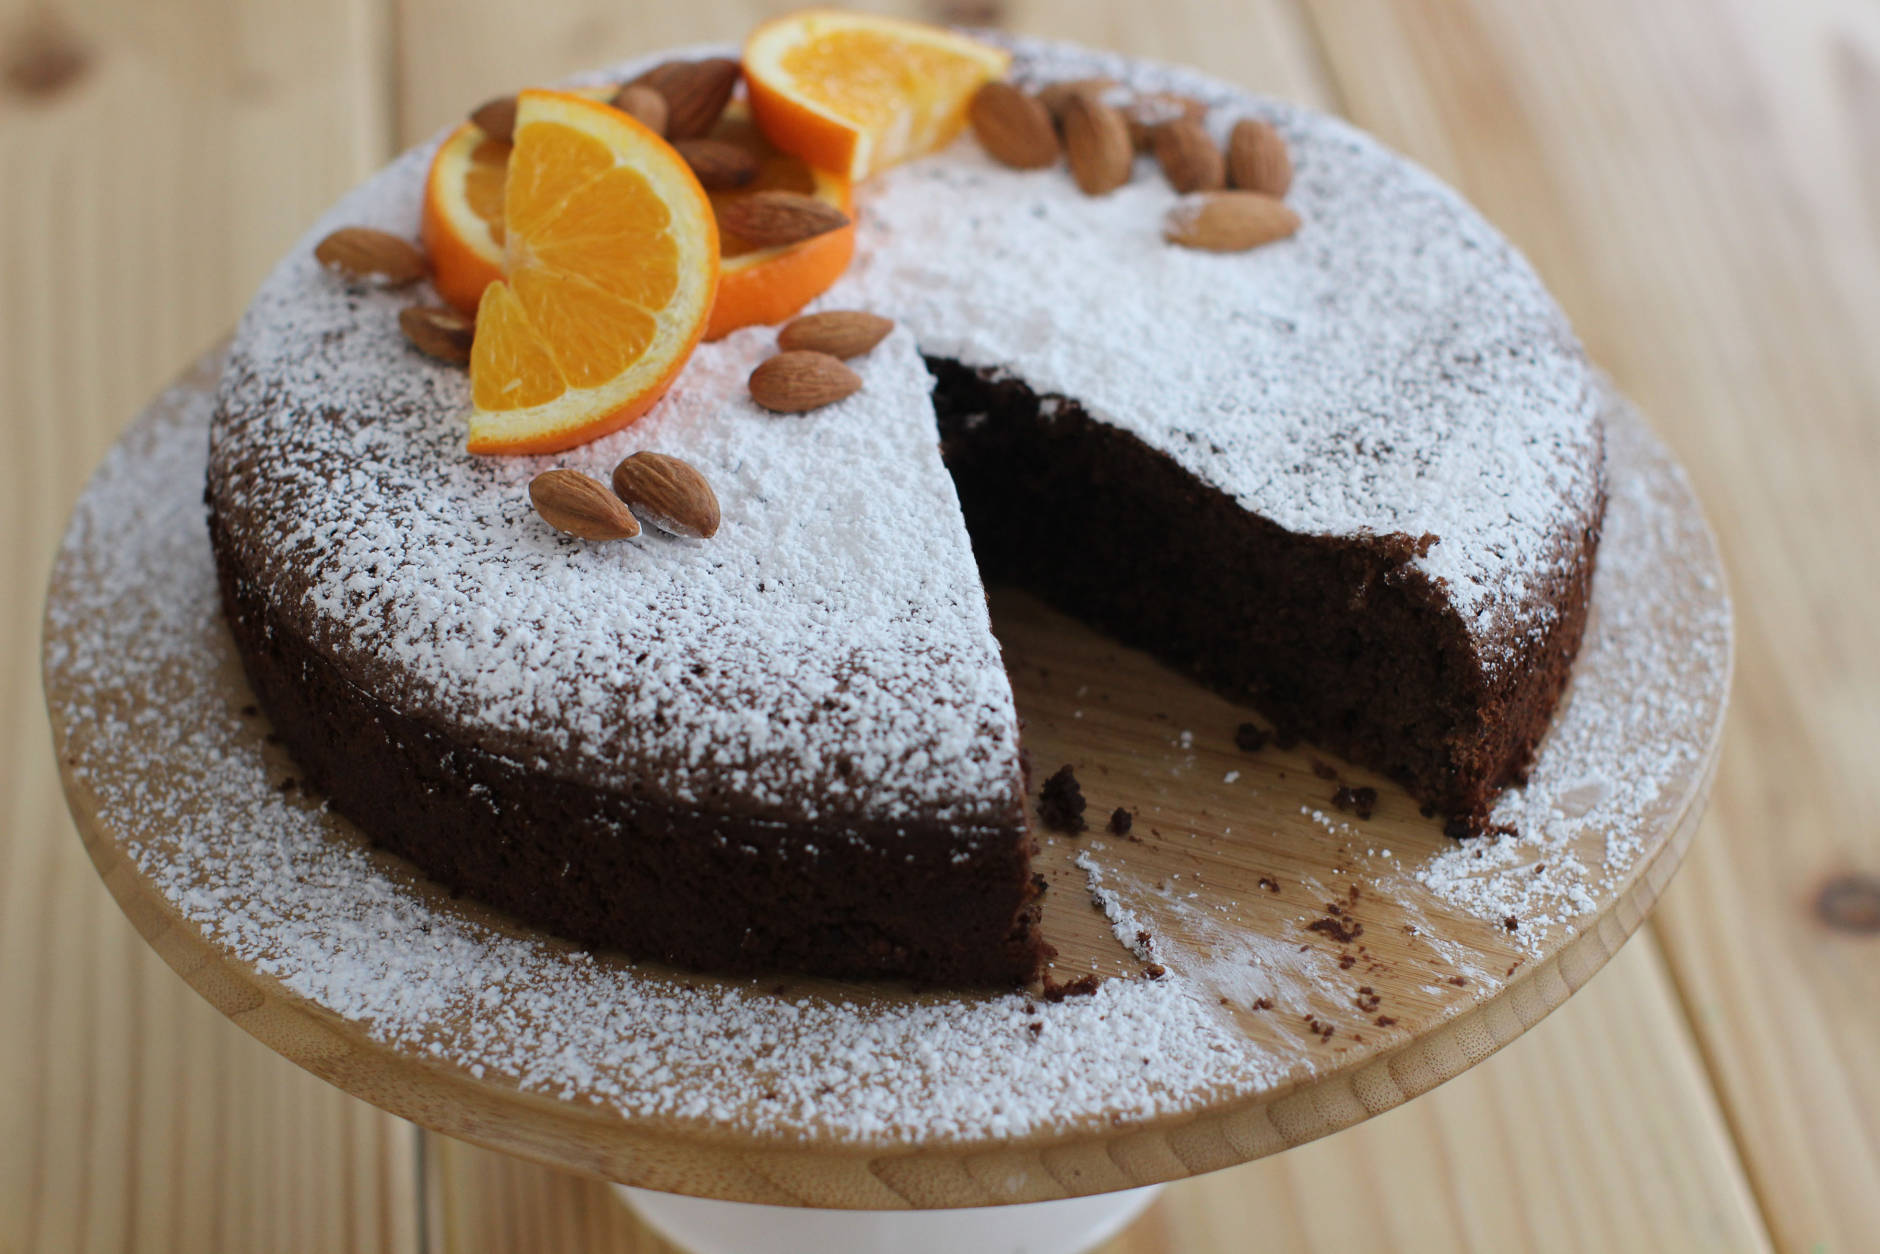 This Feb. 2, 2015 photo shows black cardamom orange flourless chocolate cake in Concord, N.H. (AP Photo/Matthew Mead)